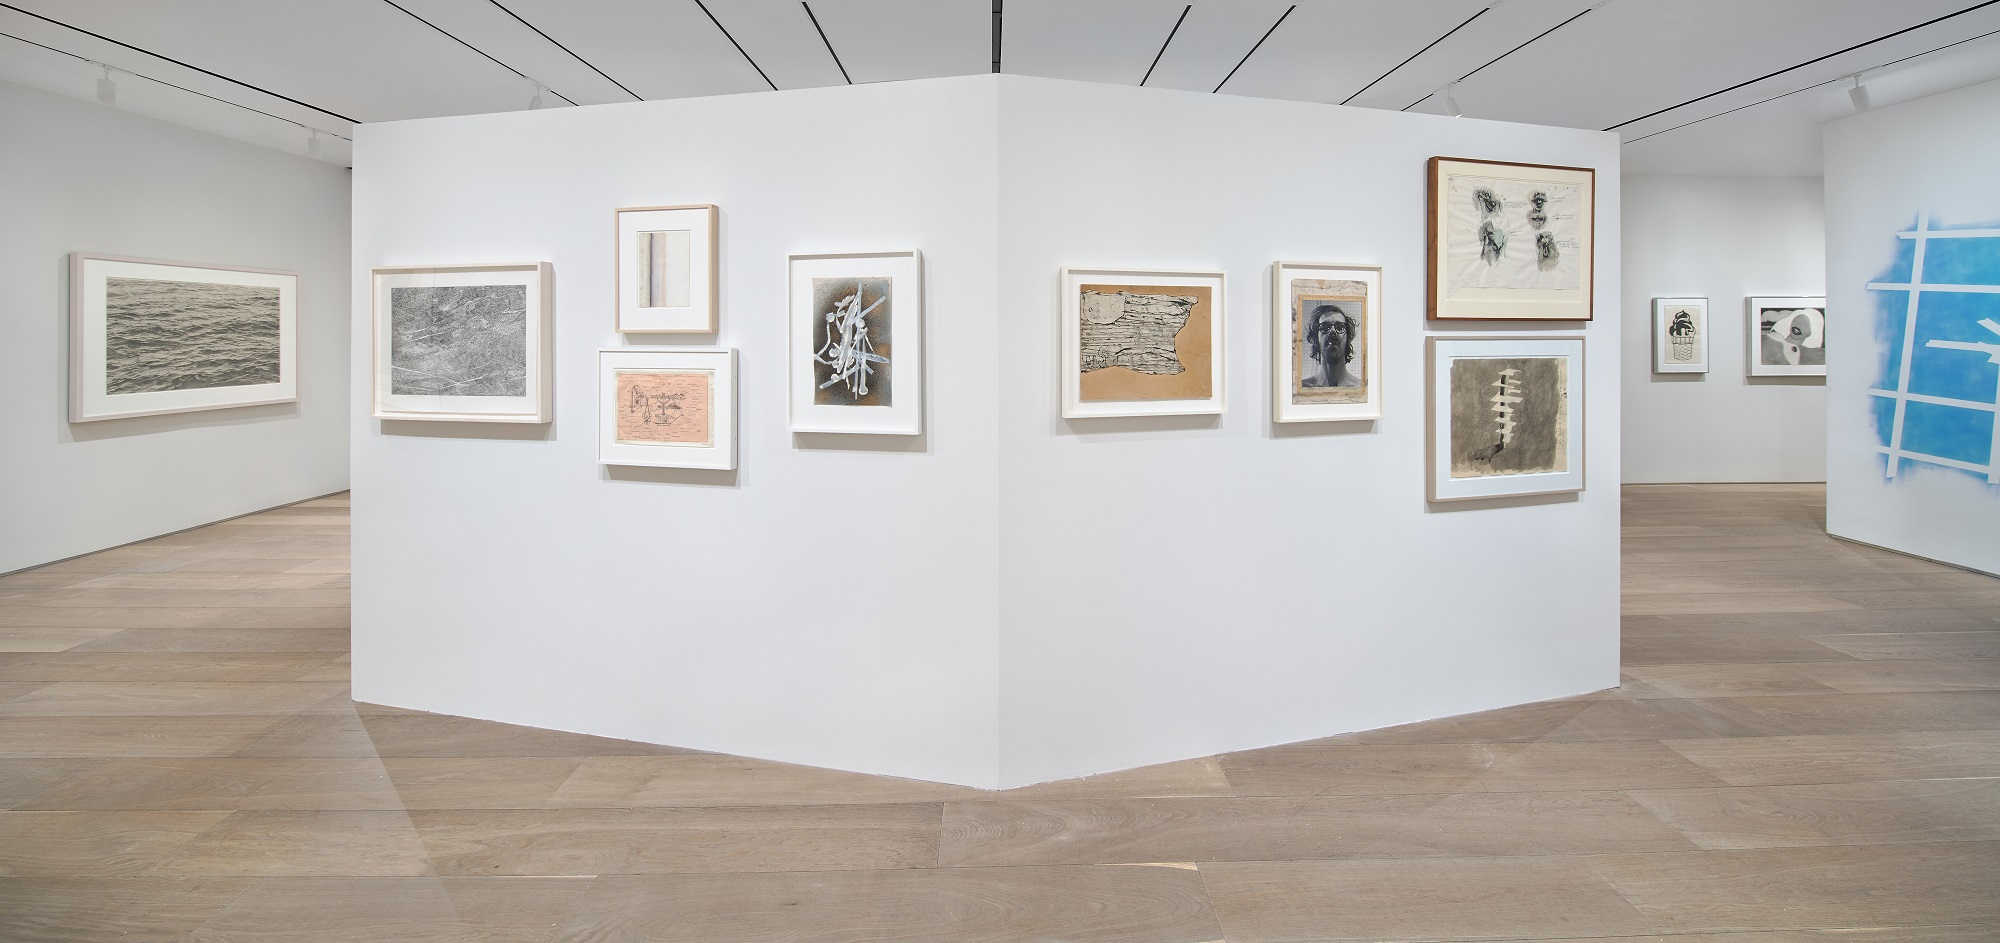 Installation view of Drawing Then: Innovation and Influence in American Drawings of the Sixties, curated by Kate Ganz, at Dominique Lévy Gallery, New York (January 27 - March 19, 2016). Courtesy: Dominique Lévy Gallery, New York/London/Geneva